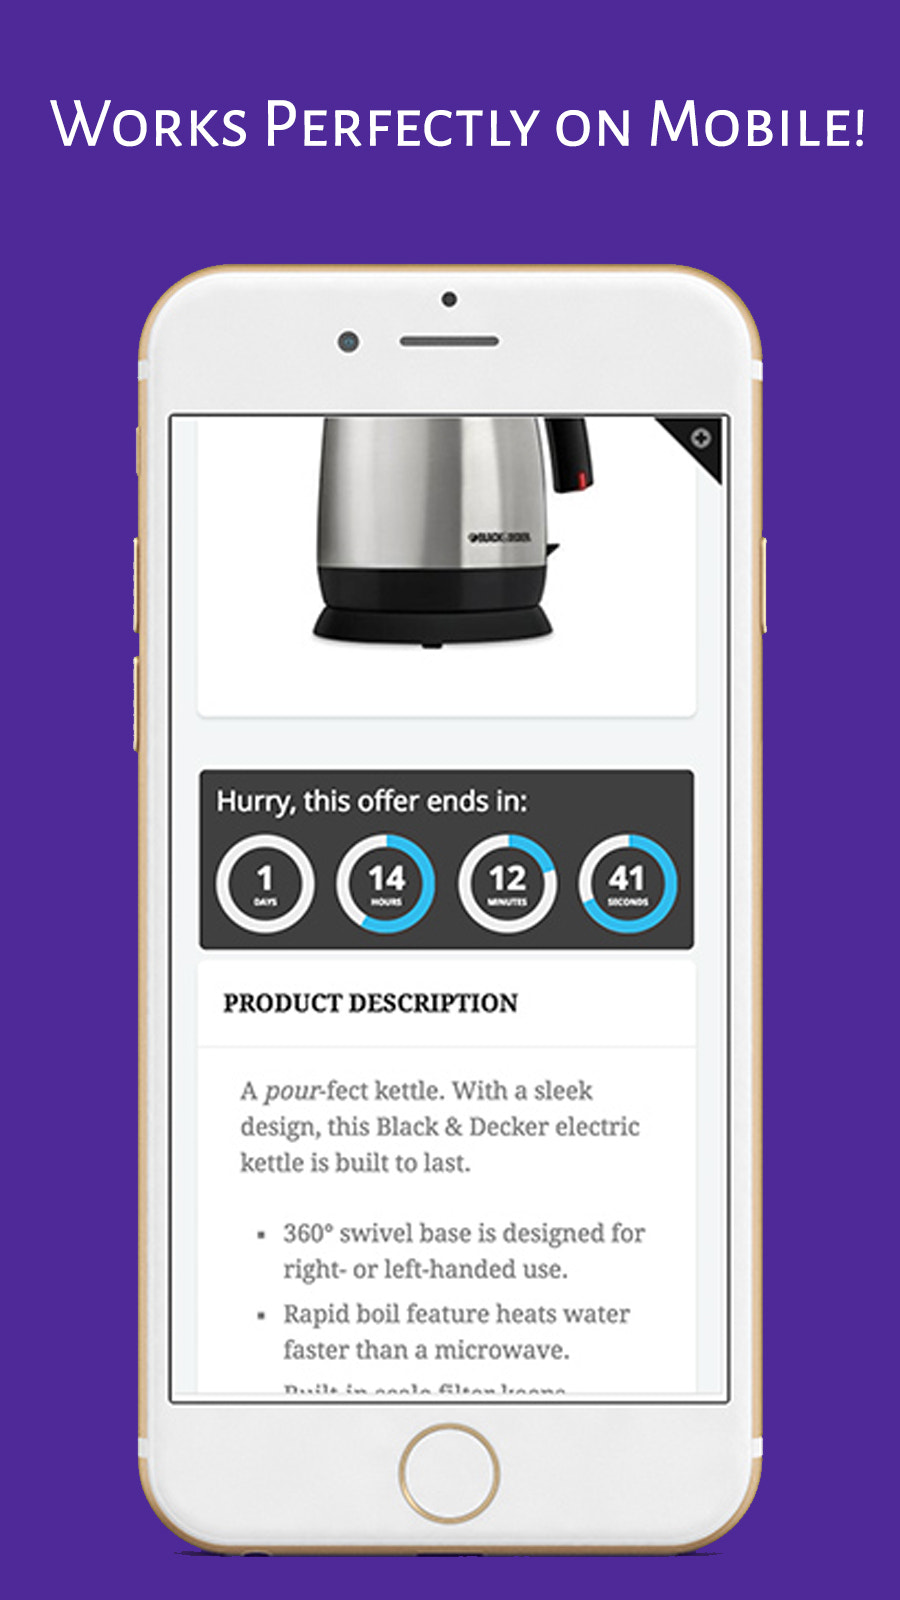 Optimized for Mobile. Fully Responsive. Increases Conversion.